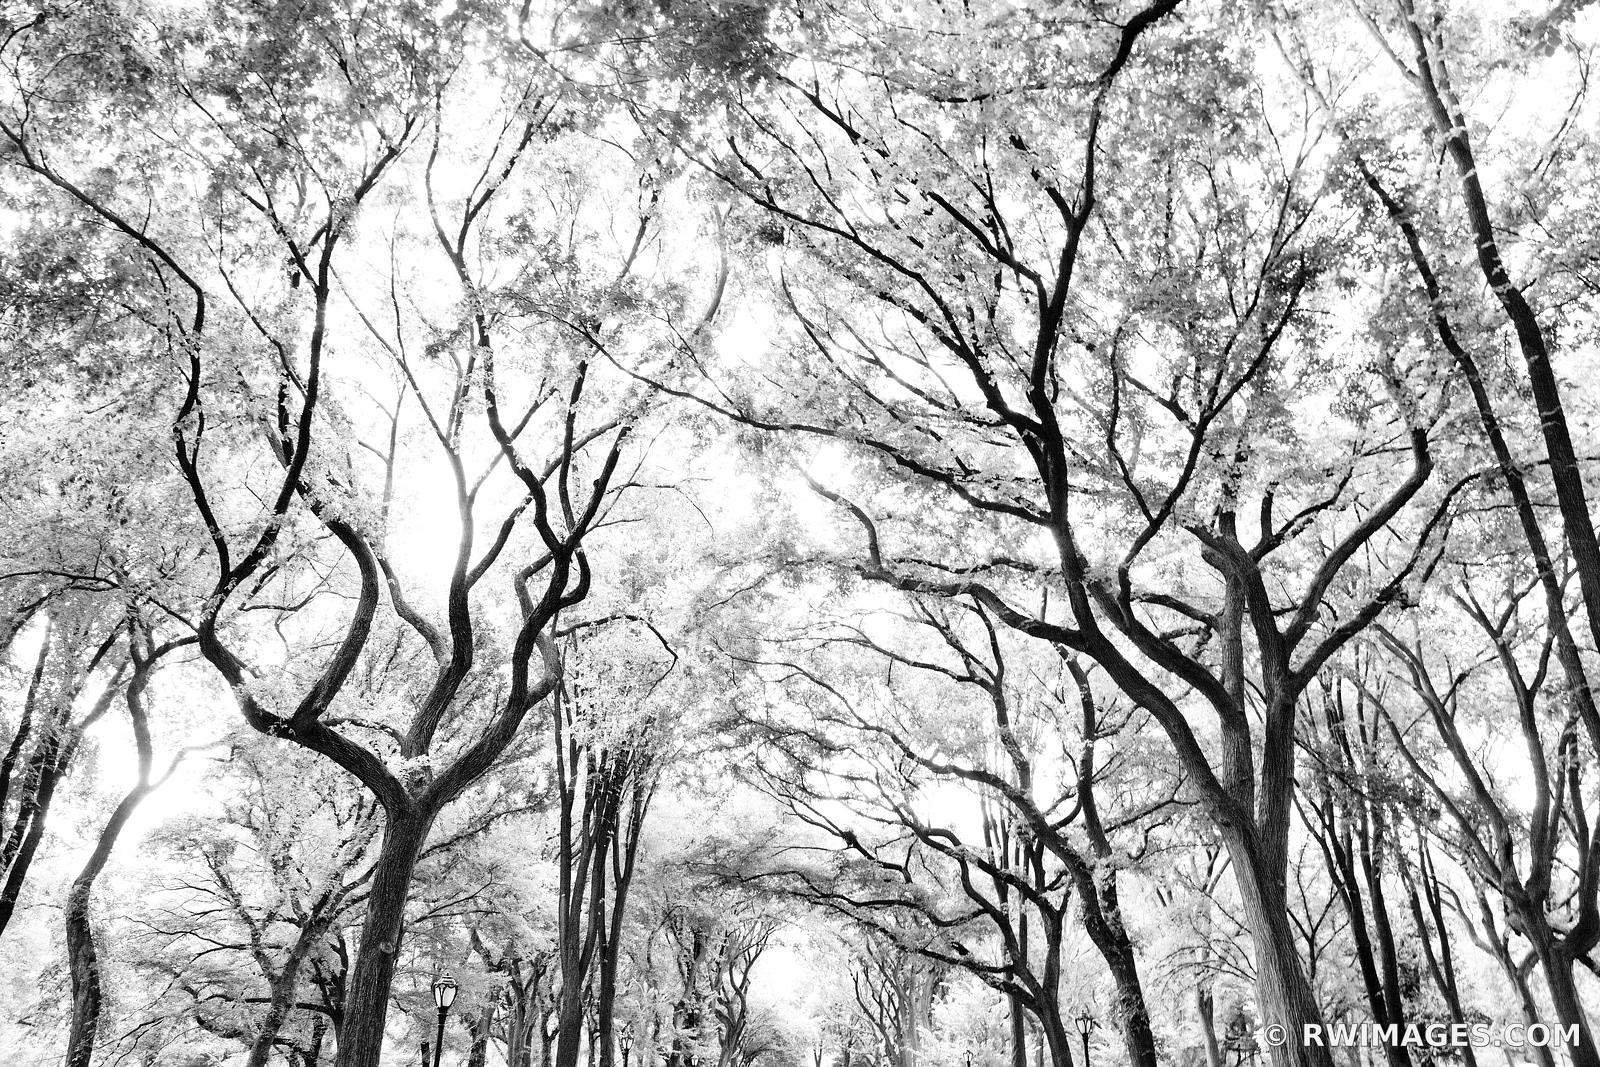 POET'S WALK CENTRAL PARK MANHATTAN NEW YORK CITY BLACK AND WHITE